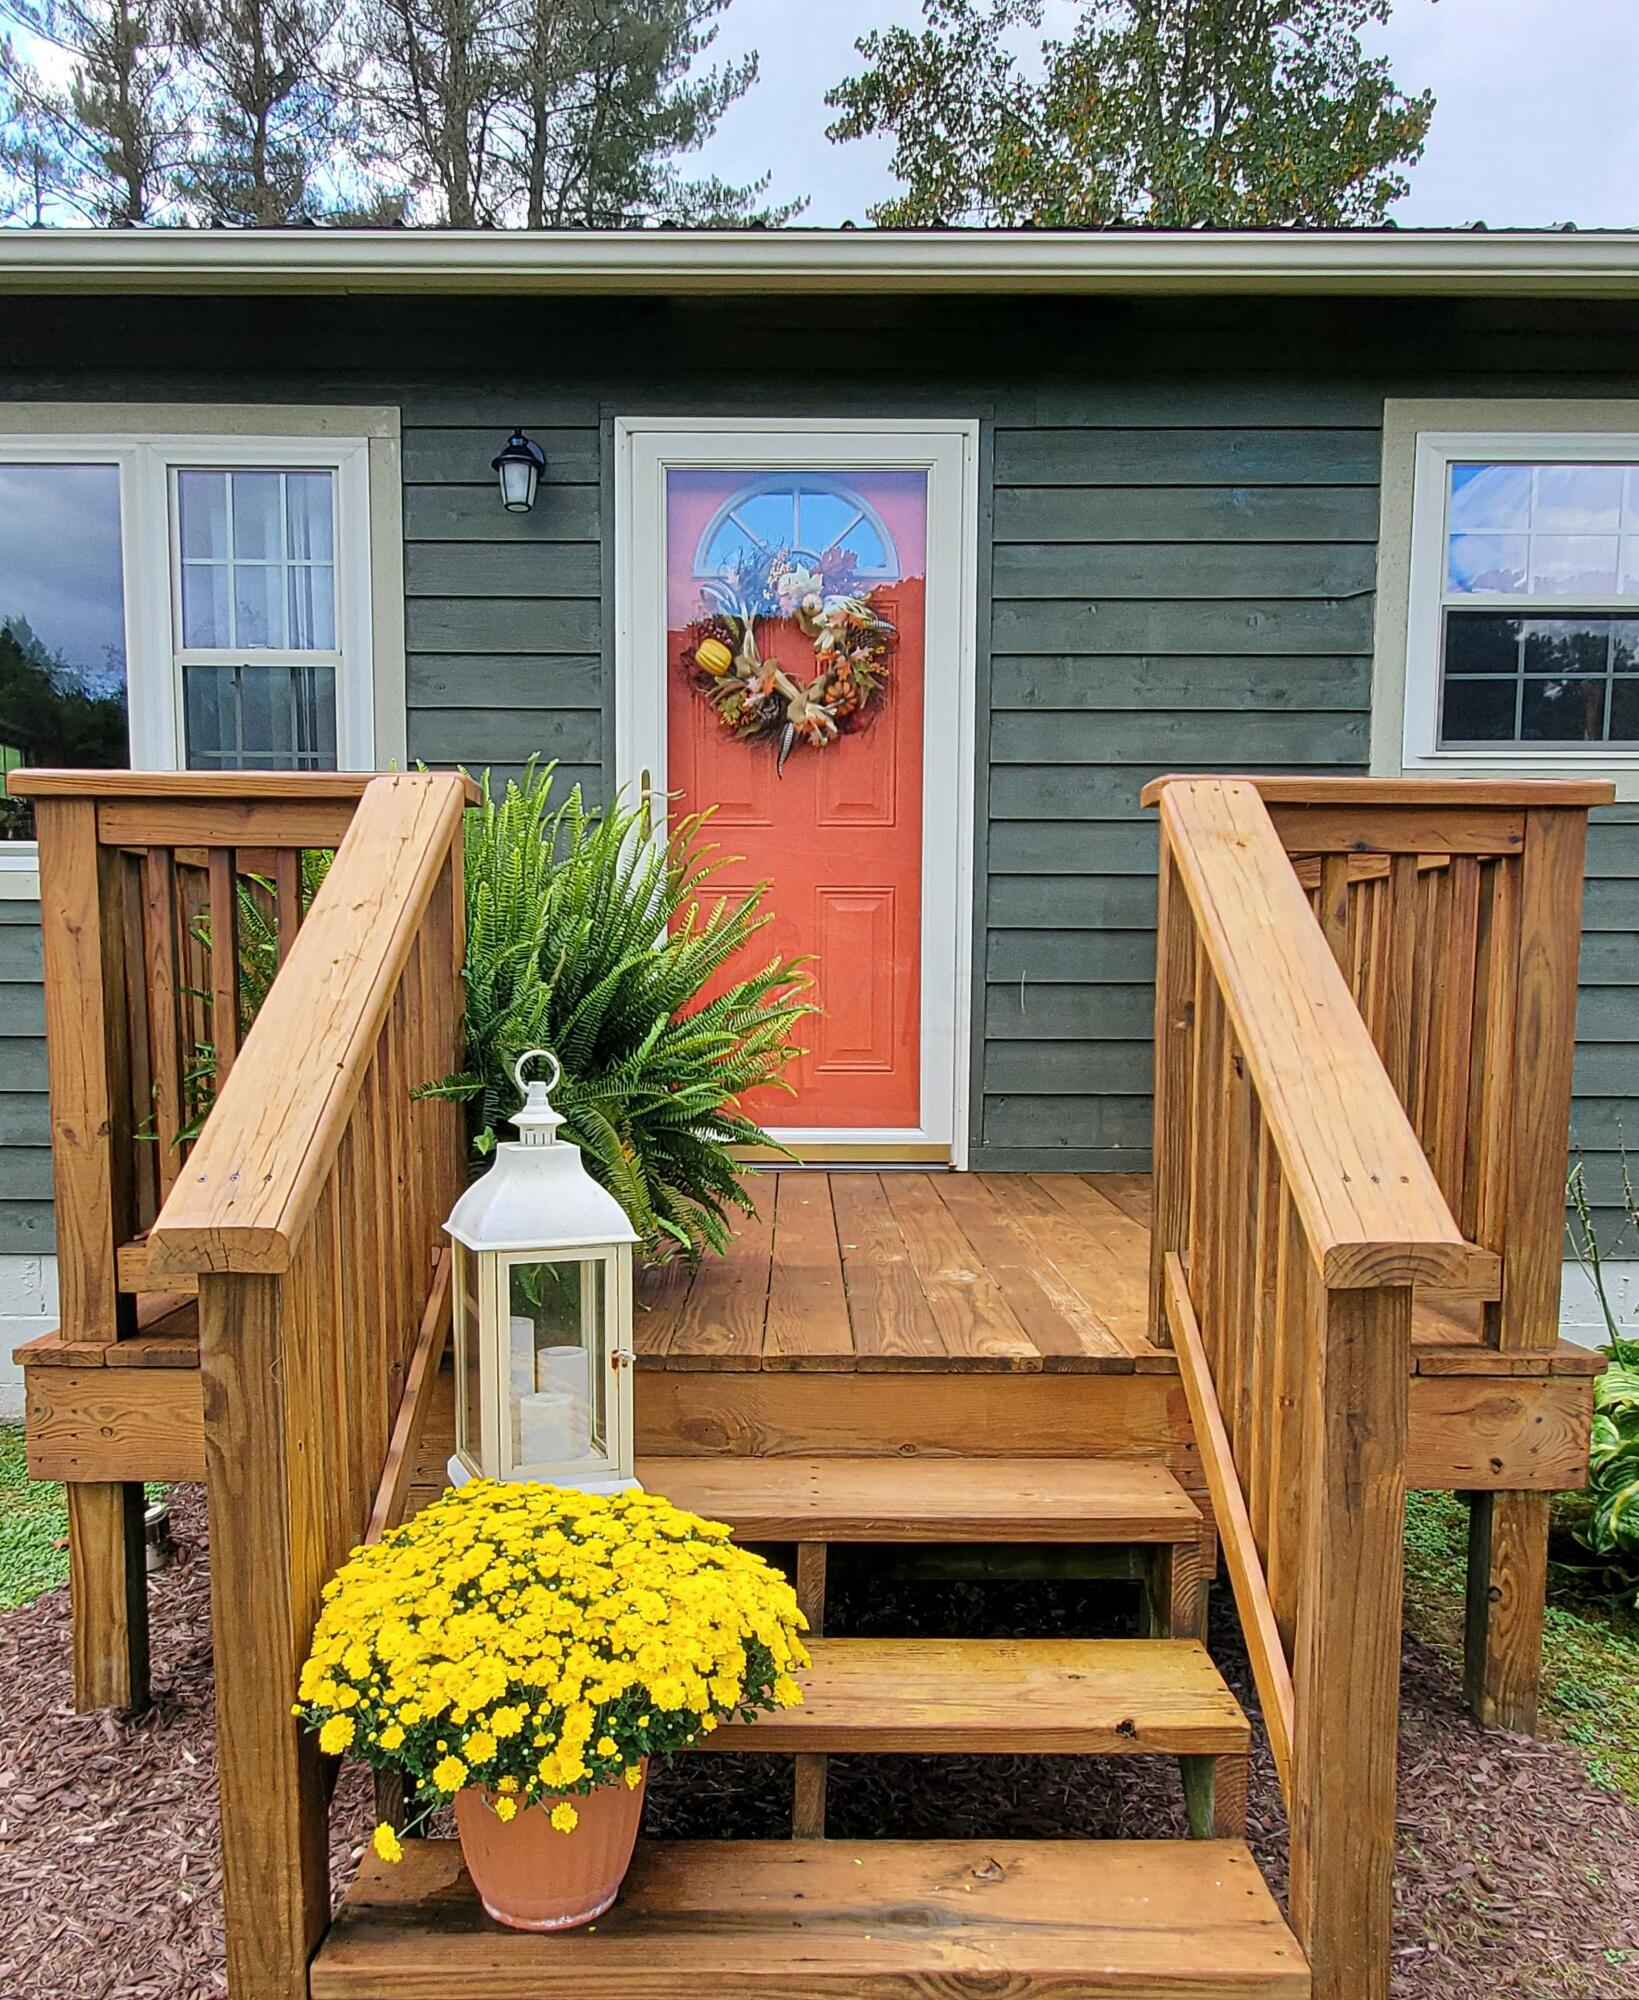 3.FrontPorch